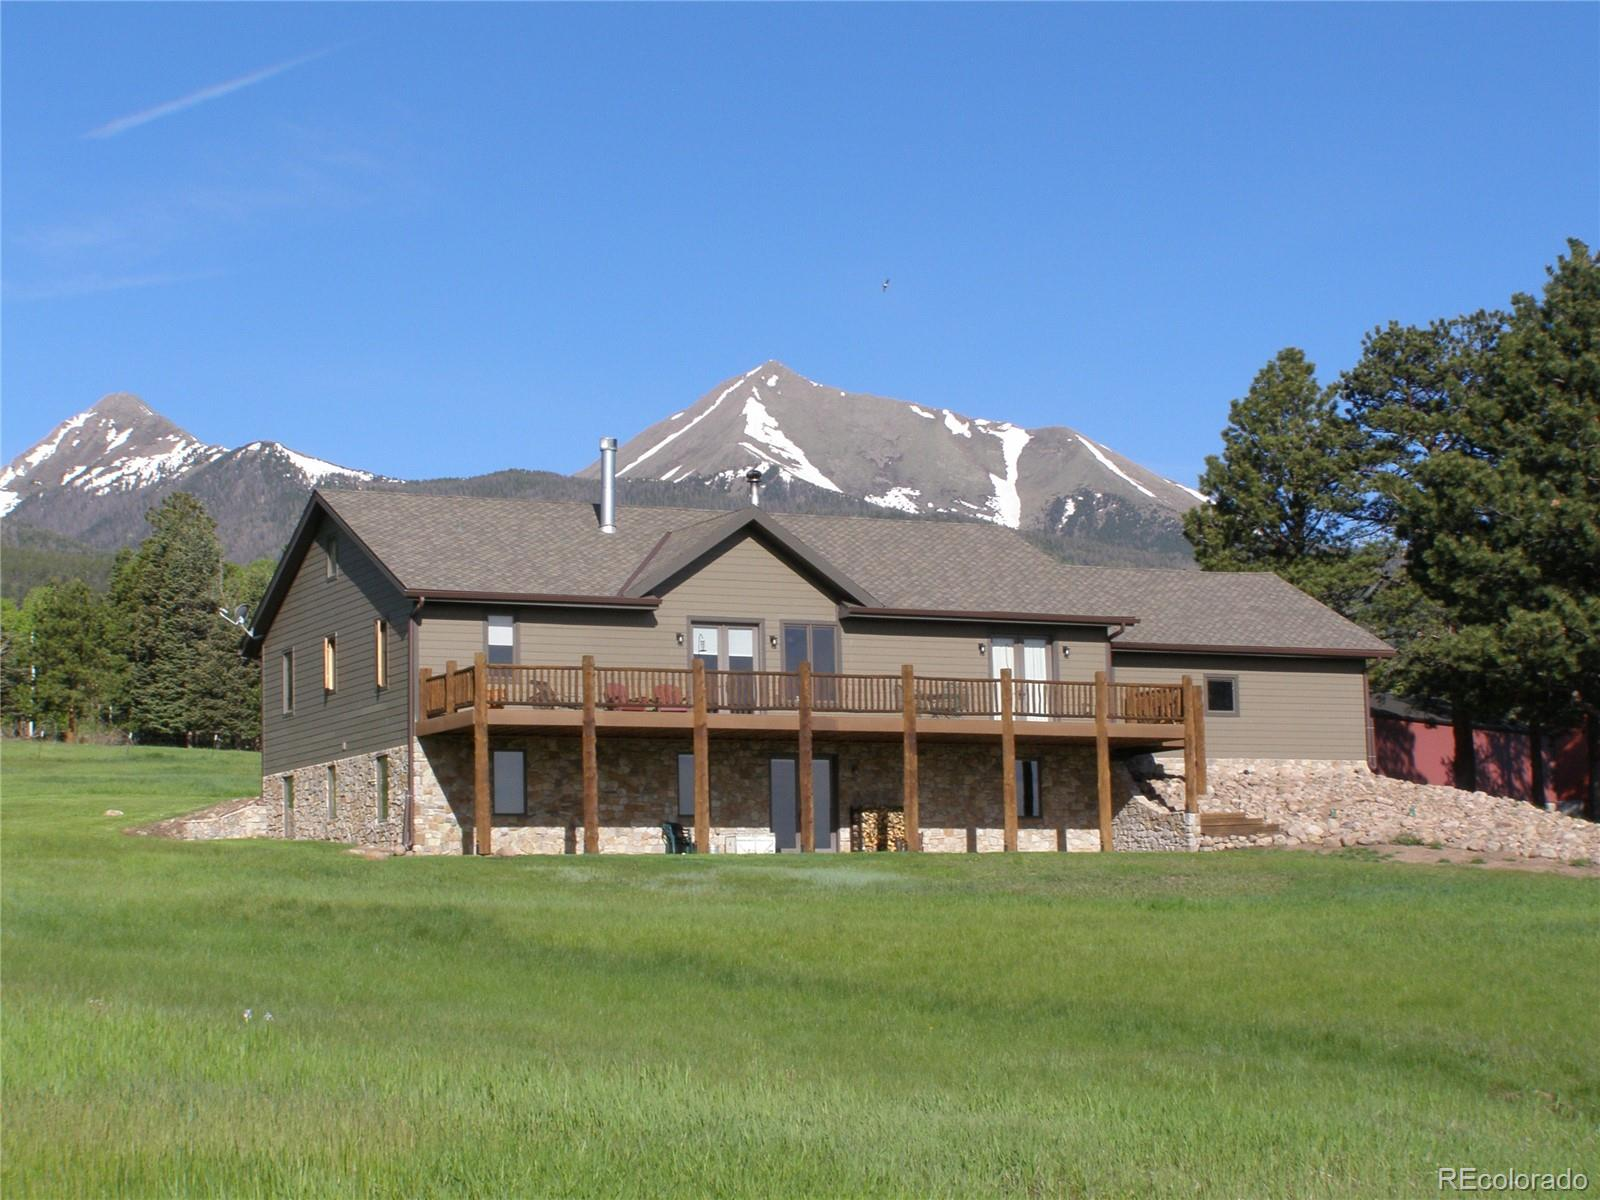 575 Shining Mountain Road, Westcliffe, CO 81252 - Westcliffe, CO real estate listing